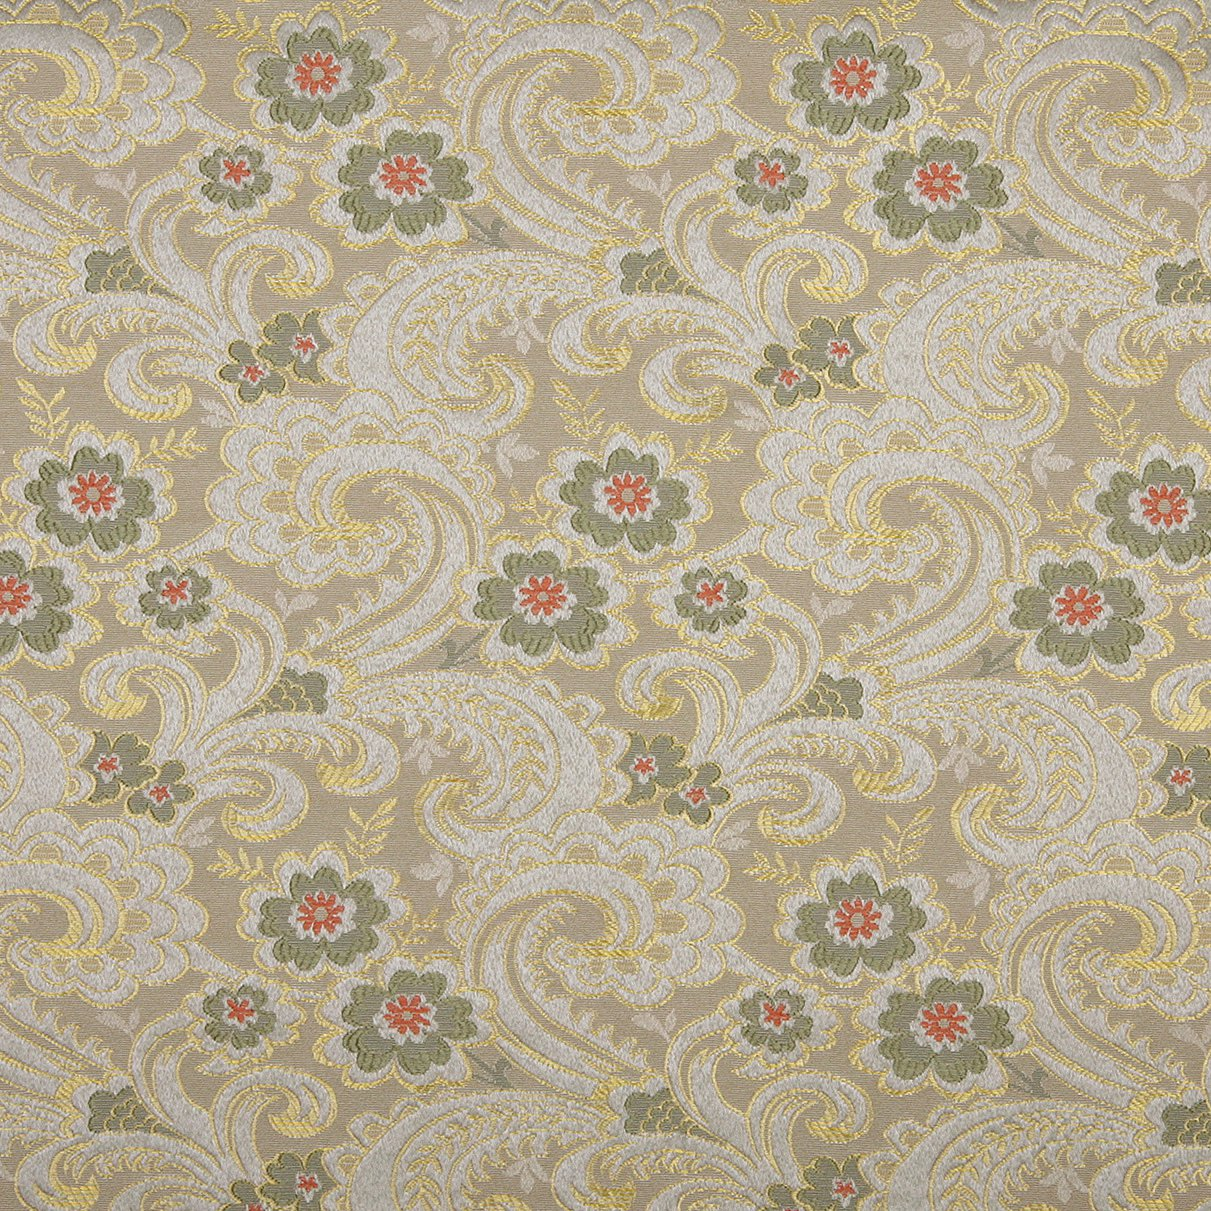 brocade sofa fabric couch vs 54 quot wide e391 gold white red and green paisley floral